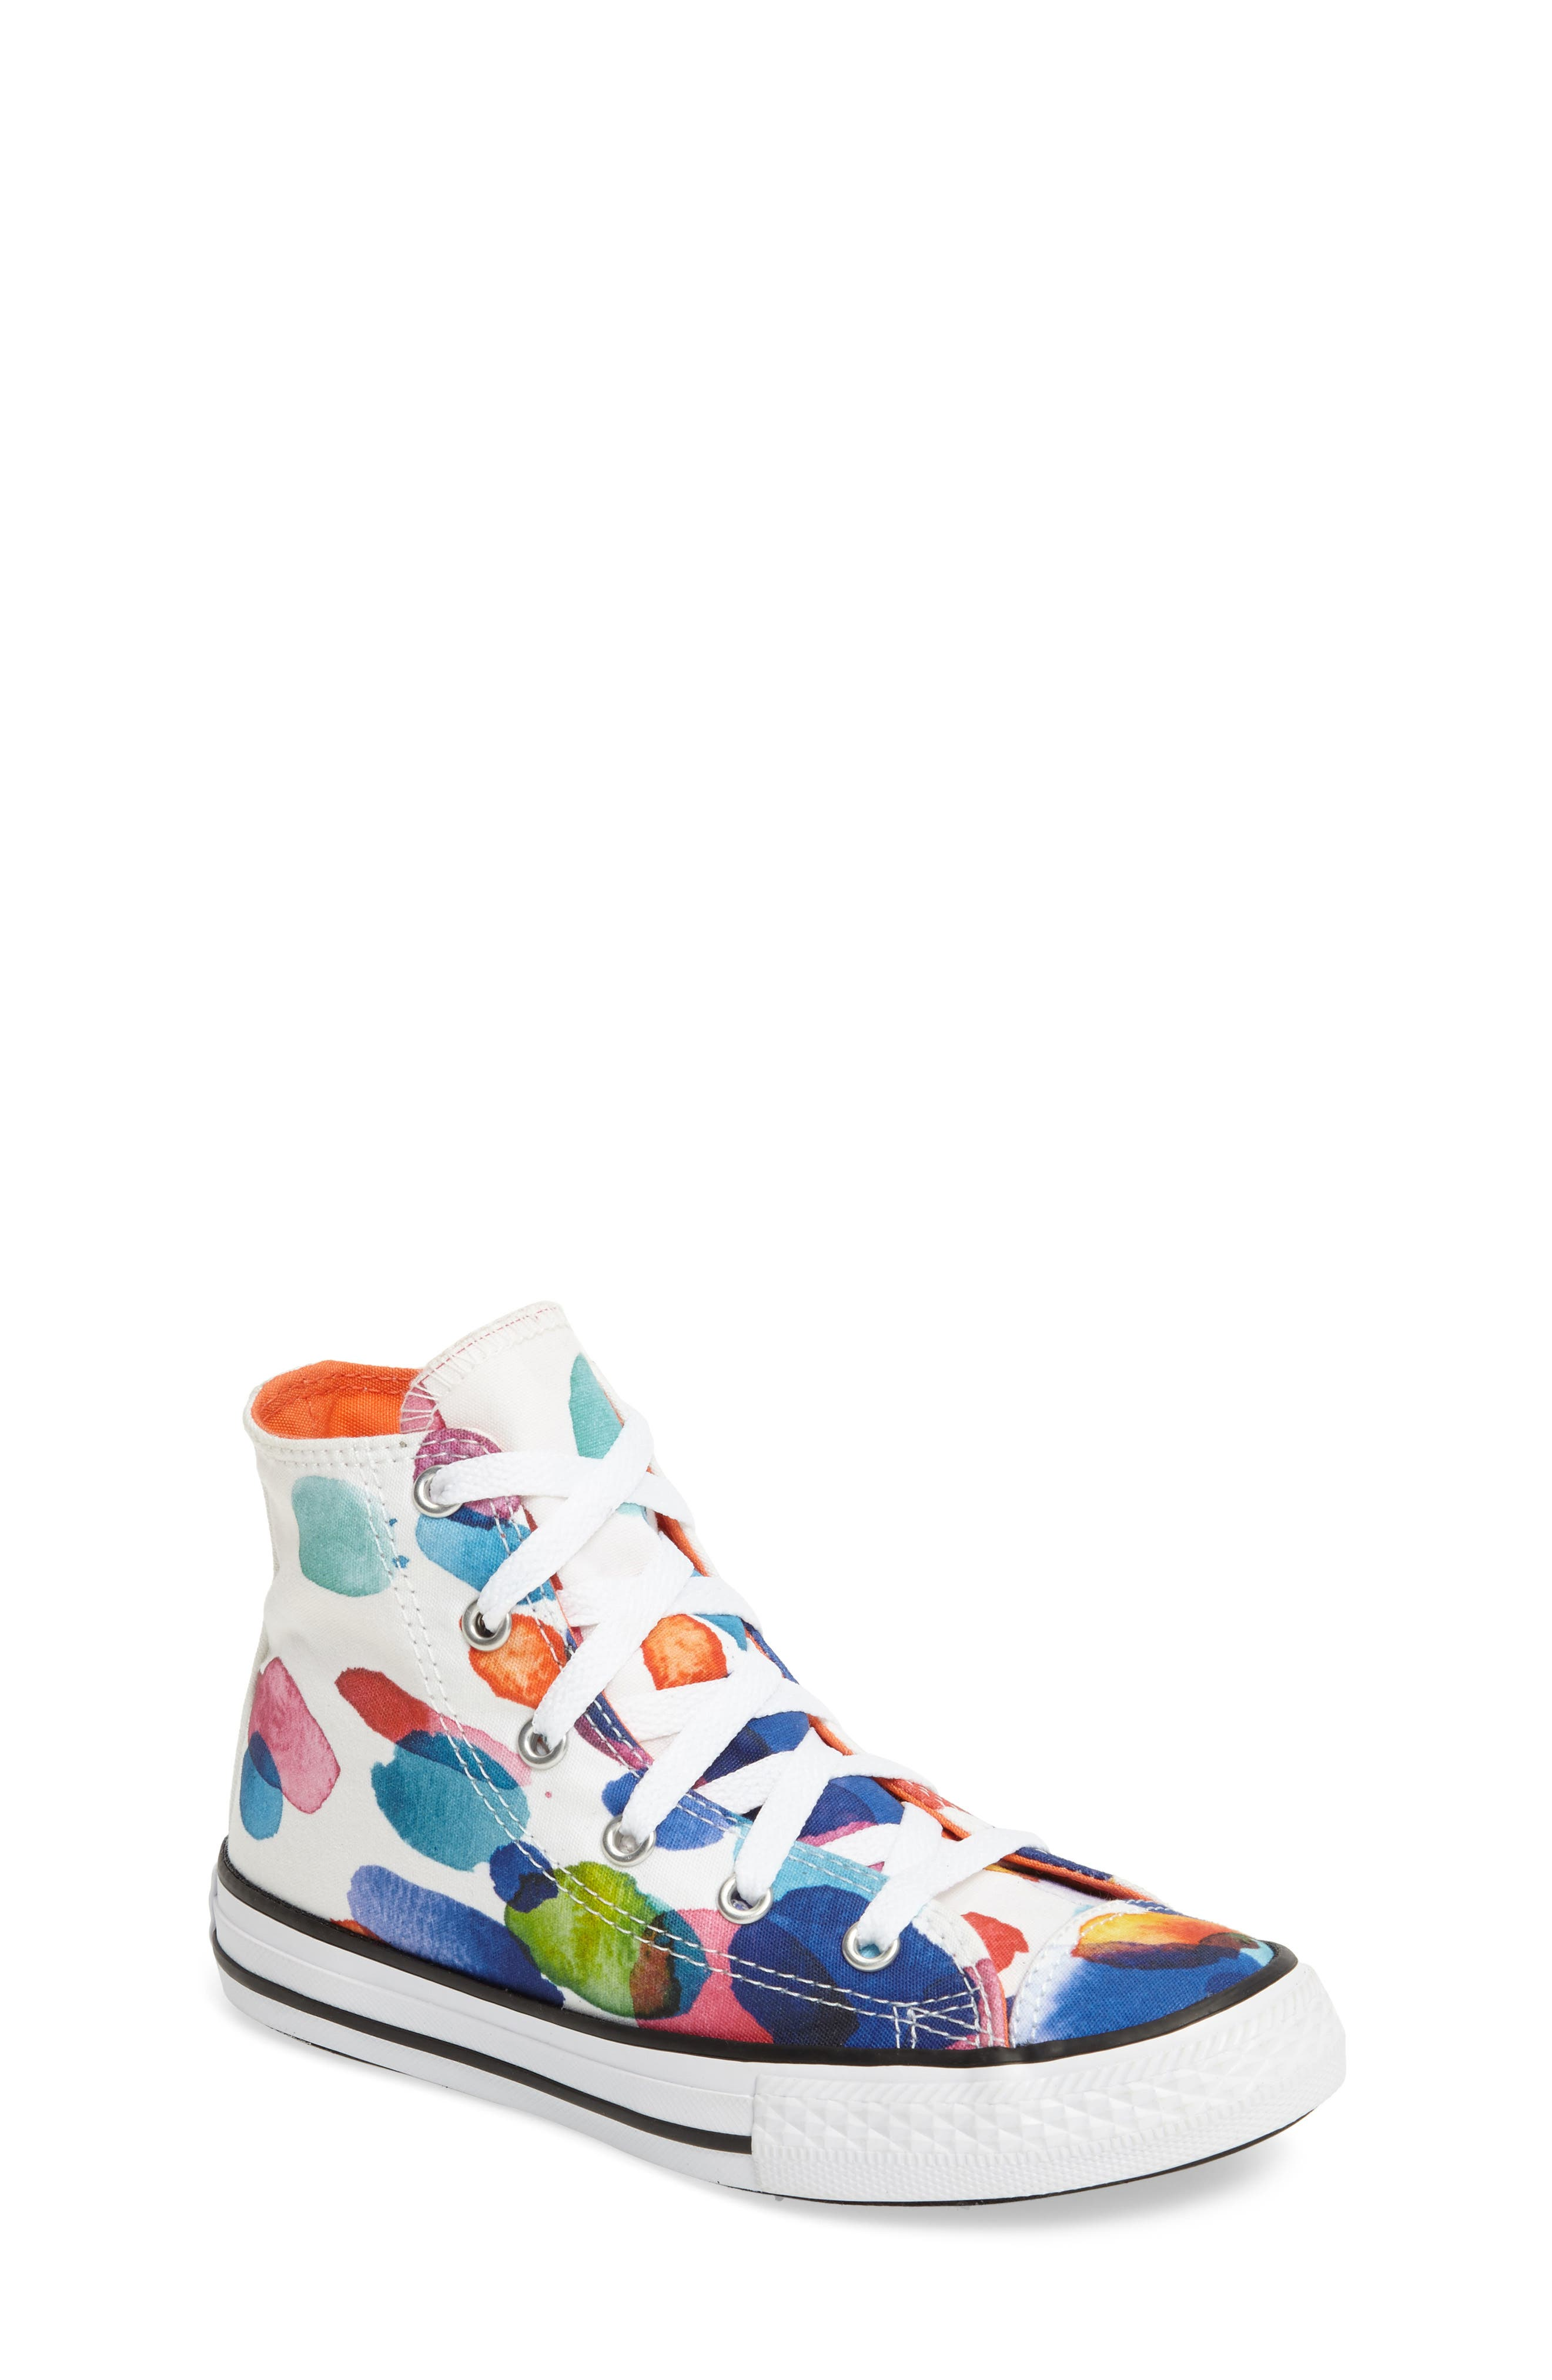 CONVERSE Chuck Taylor<sup>®</sup> All Star<sup>®</sup> Floral Petals High Top Sneaker